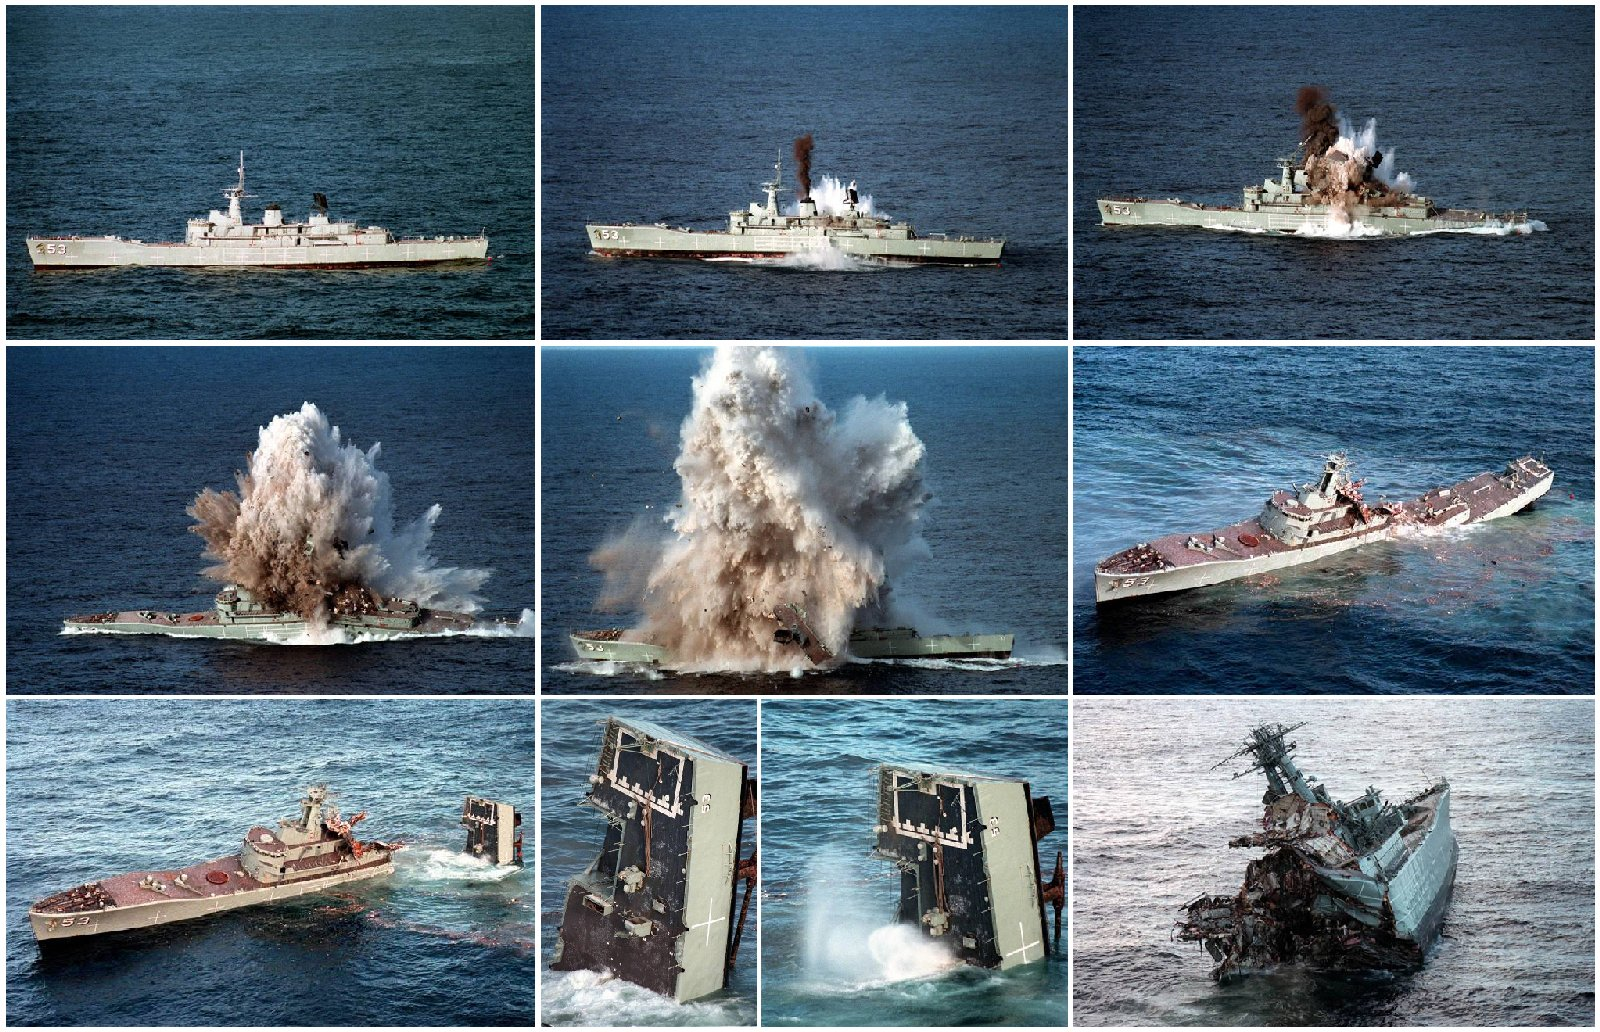 http://dic.academic.ru/pictures/wiki/files/77/Mark_48_Torpedo_testing.jpg